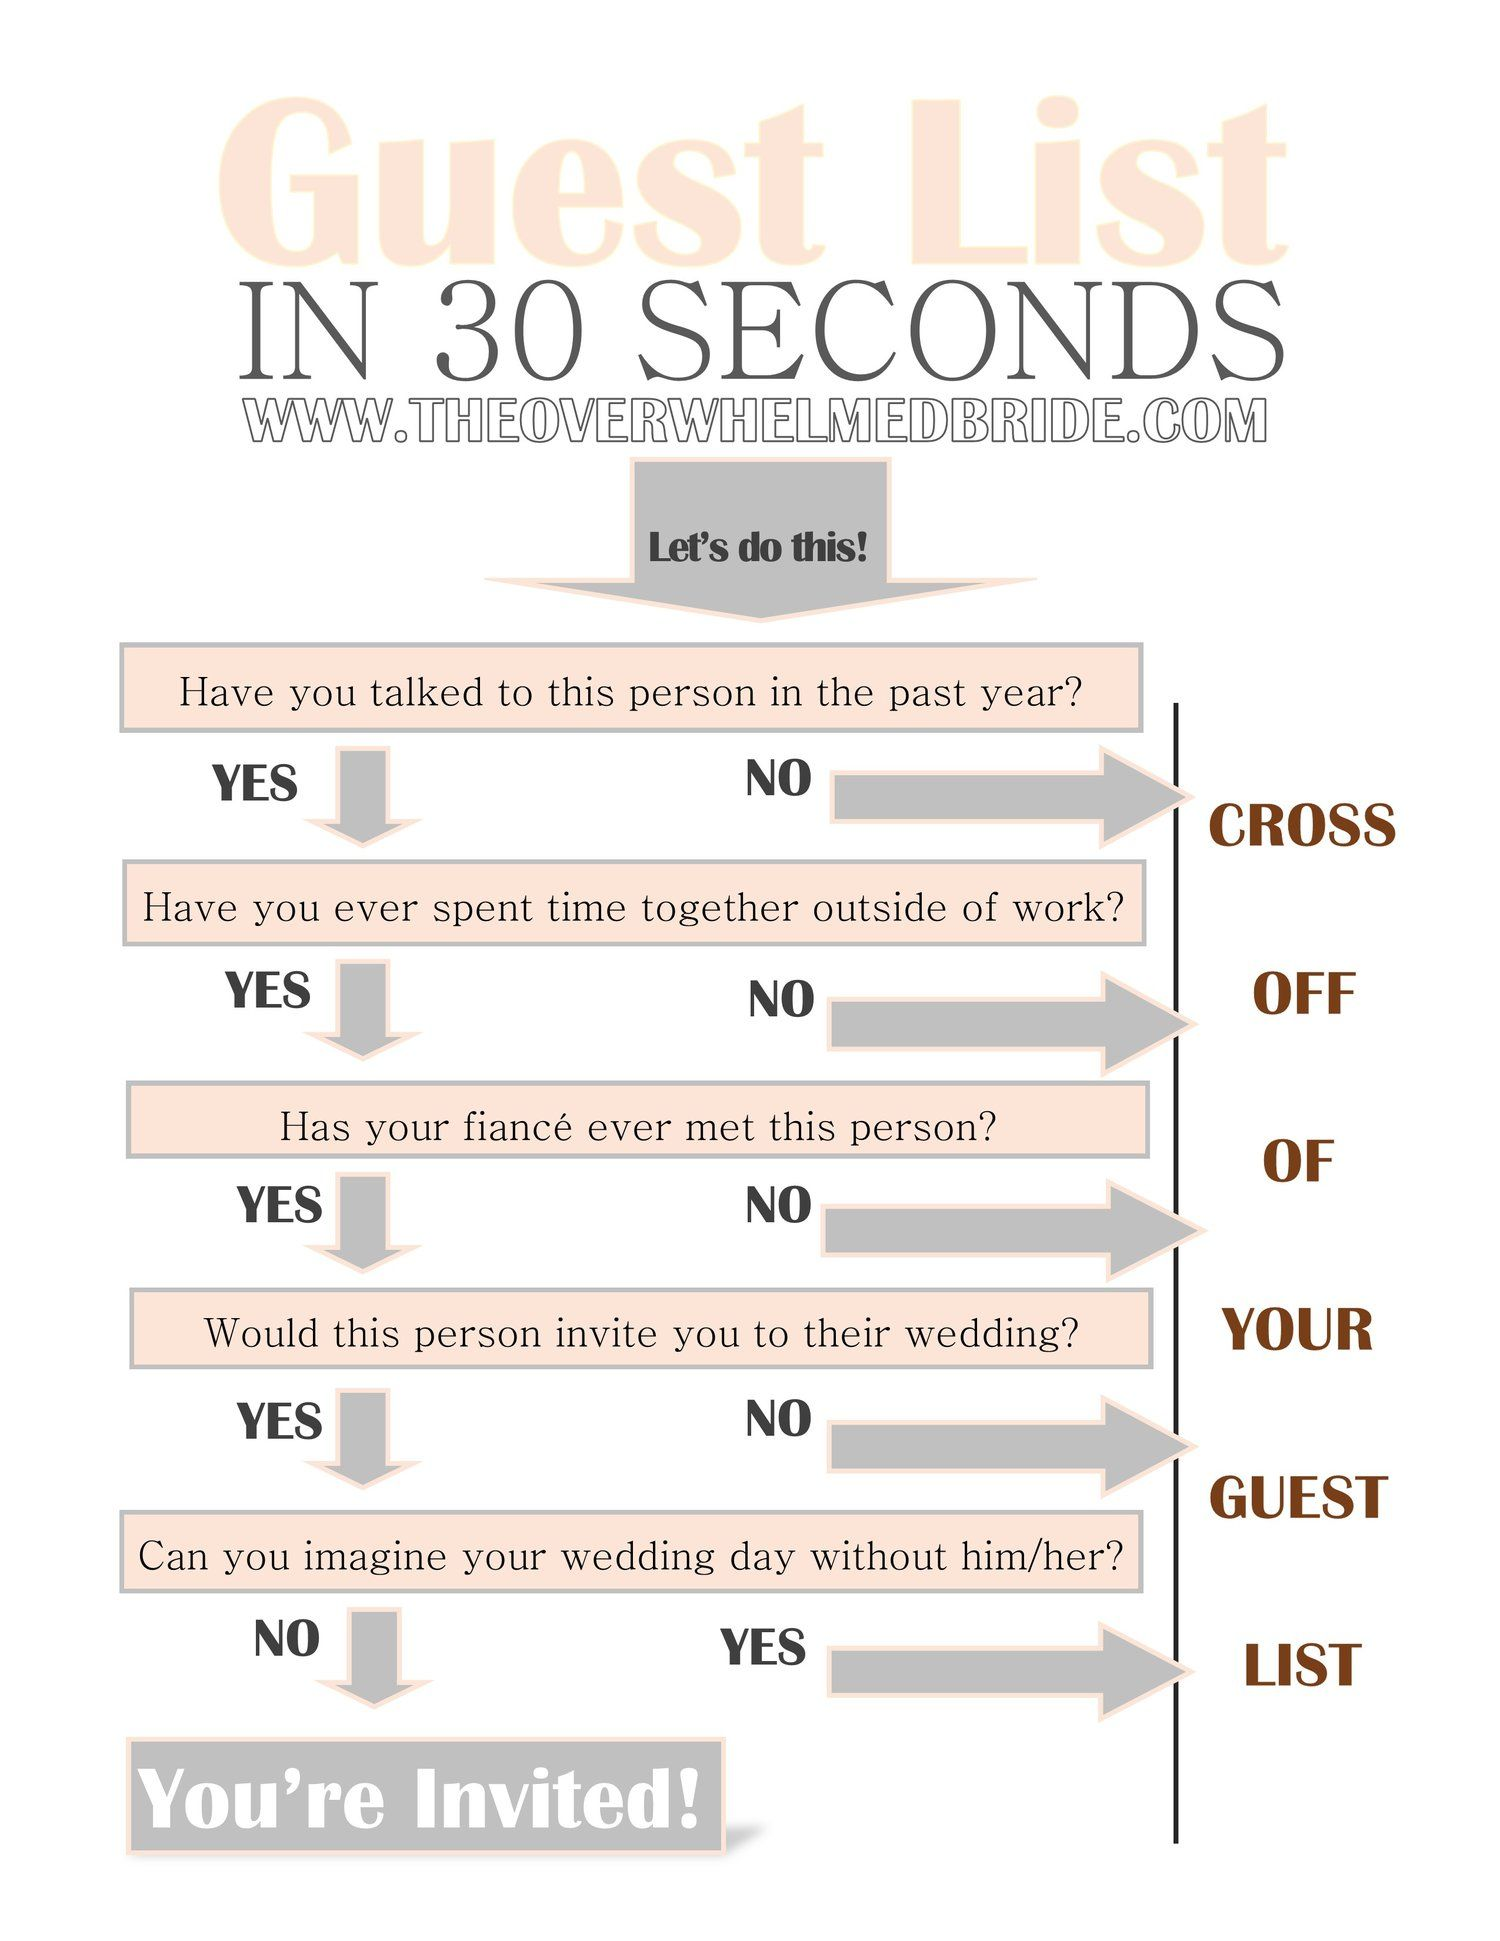 Wedding Timeline Checklist.Wedding Planning Timeline Checklist The Overwhelmed Bride Blog